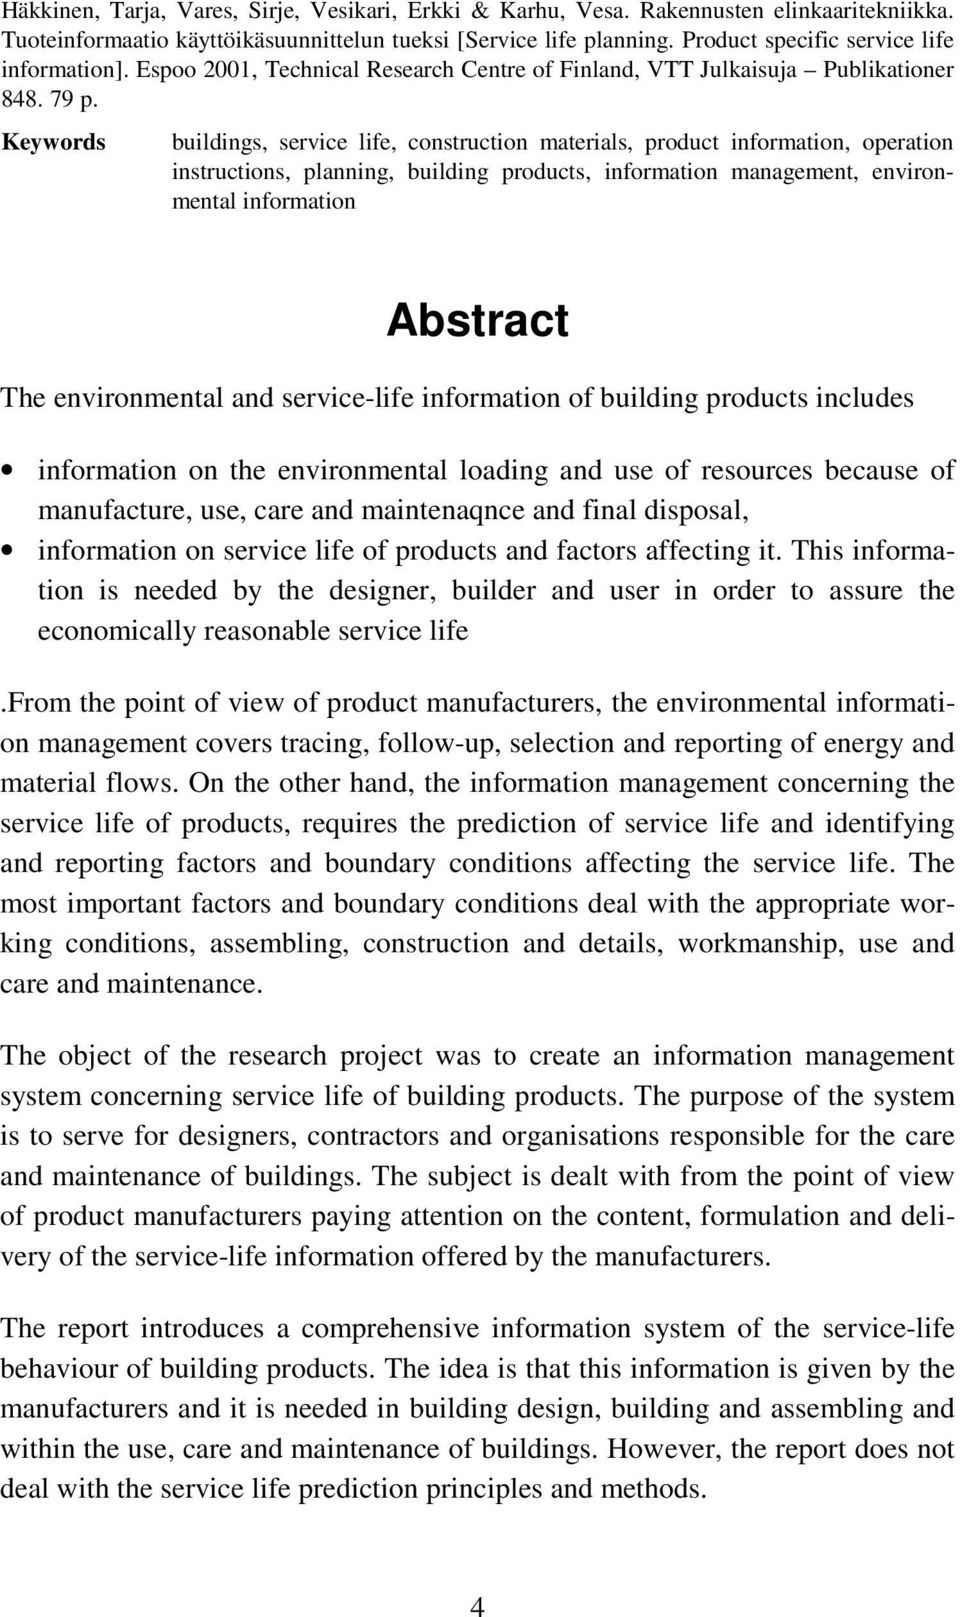 Keywords buildings, service life, construction materials, product information, operation instructions, planning, building products, information management, environmental information Abstract The